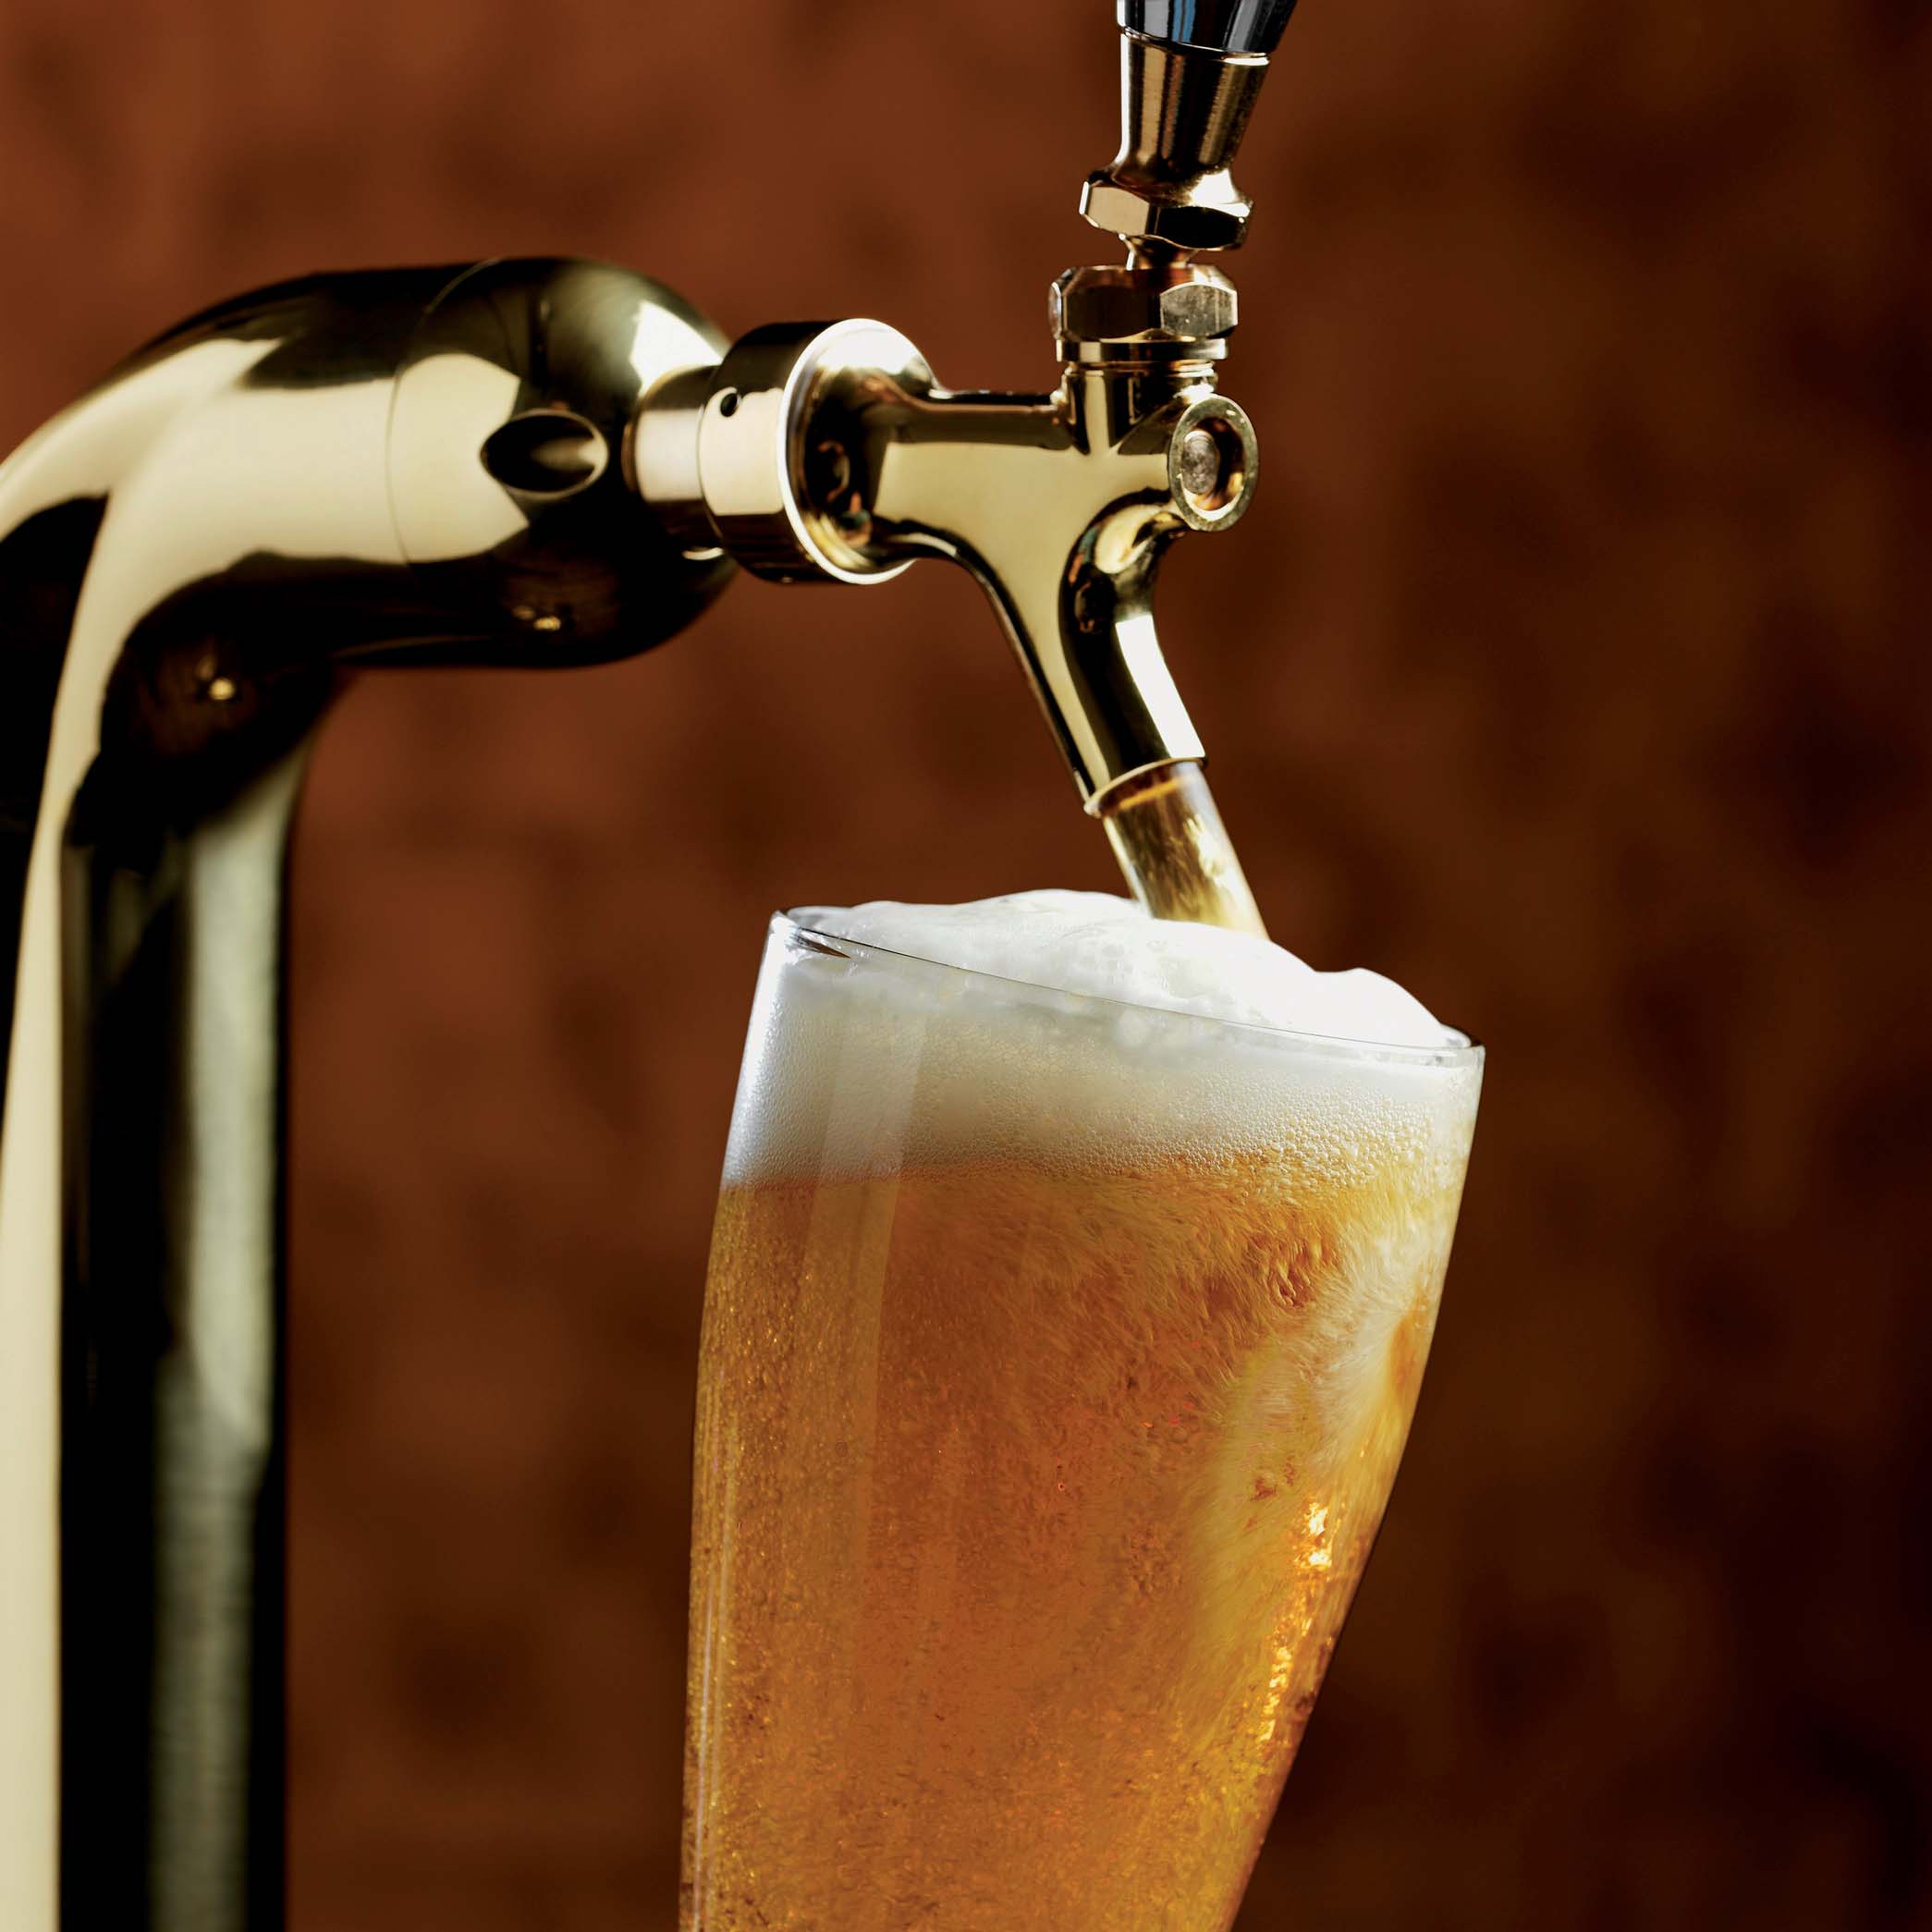 drink242-beer-tap-shot-lightened.jpg